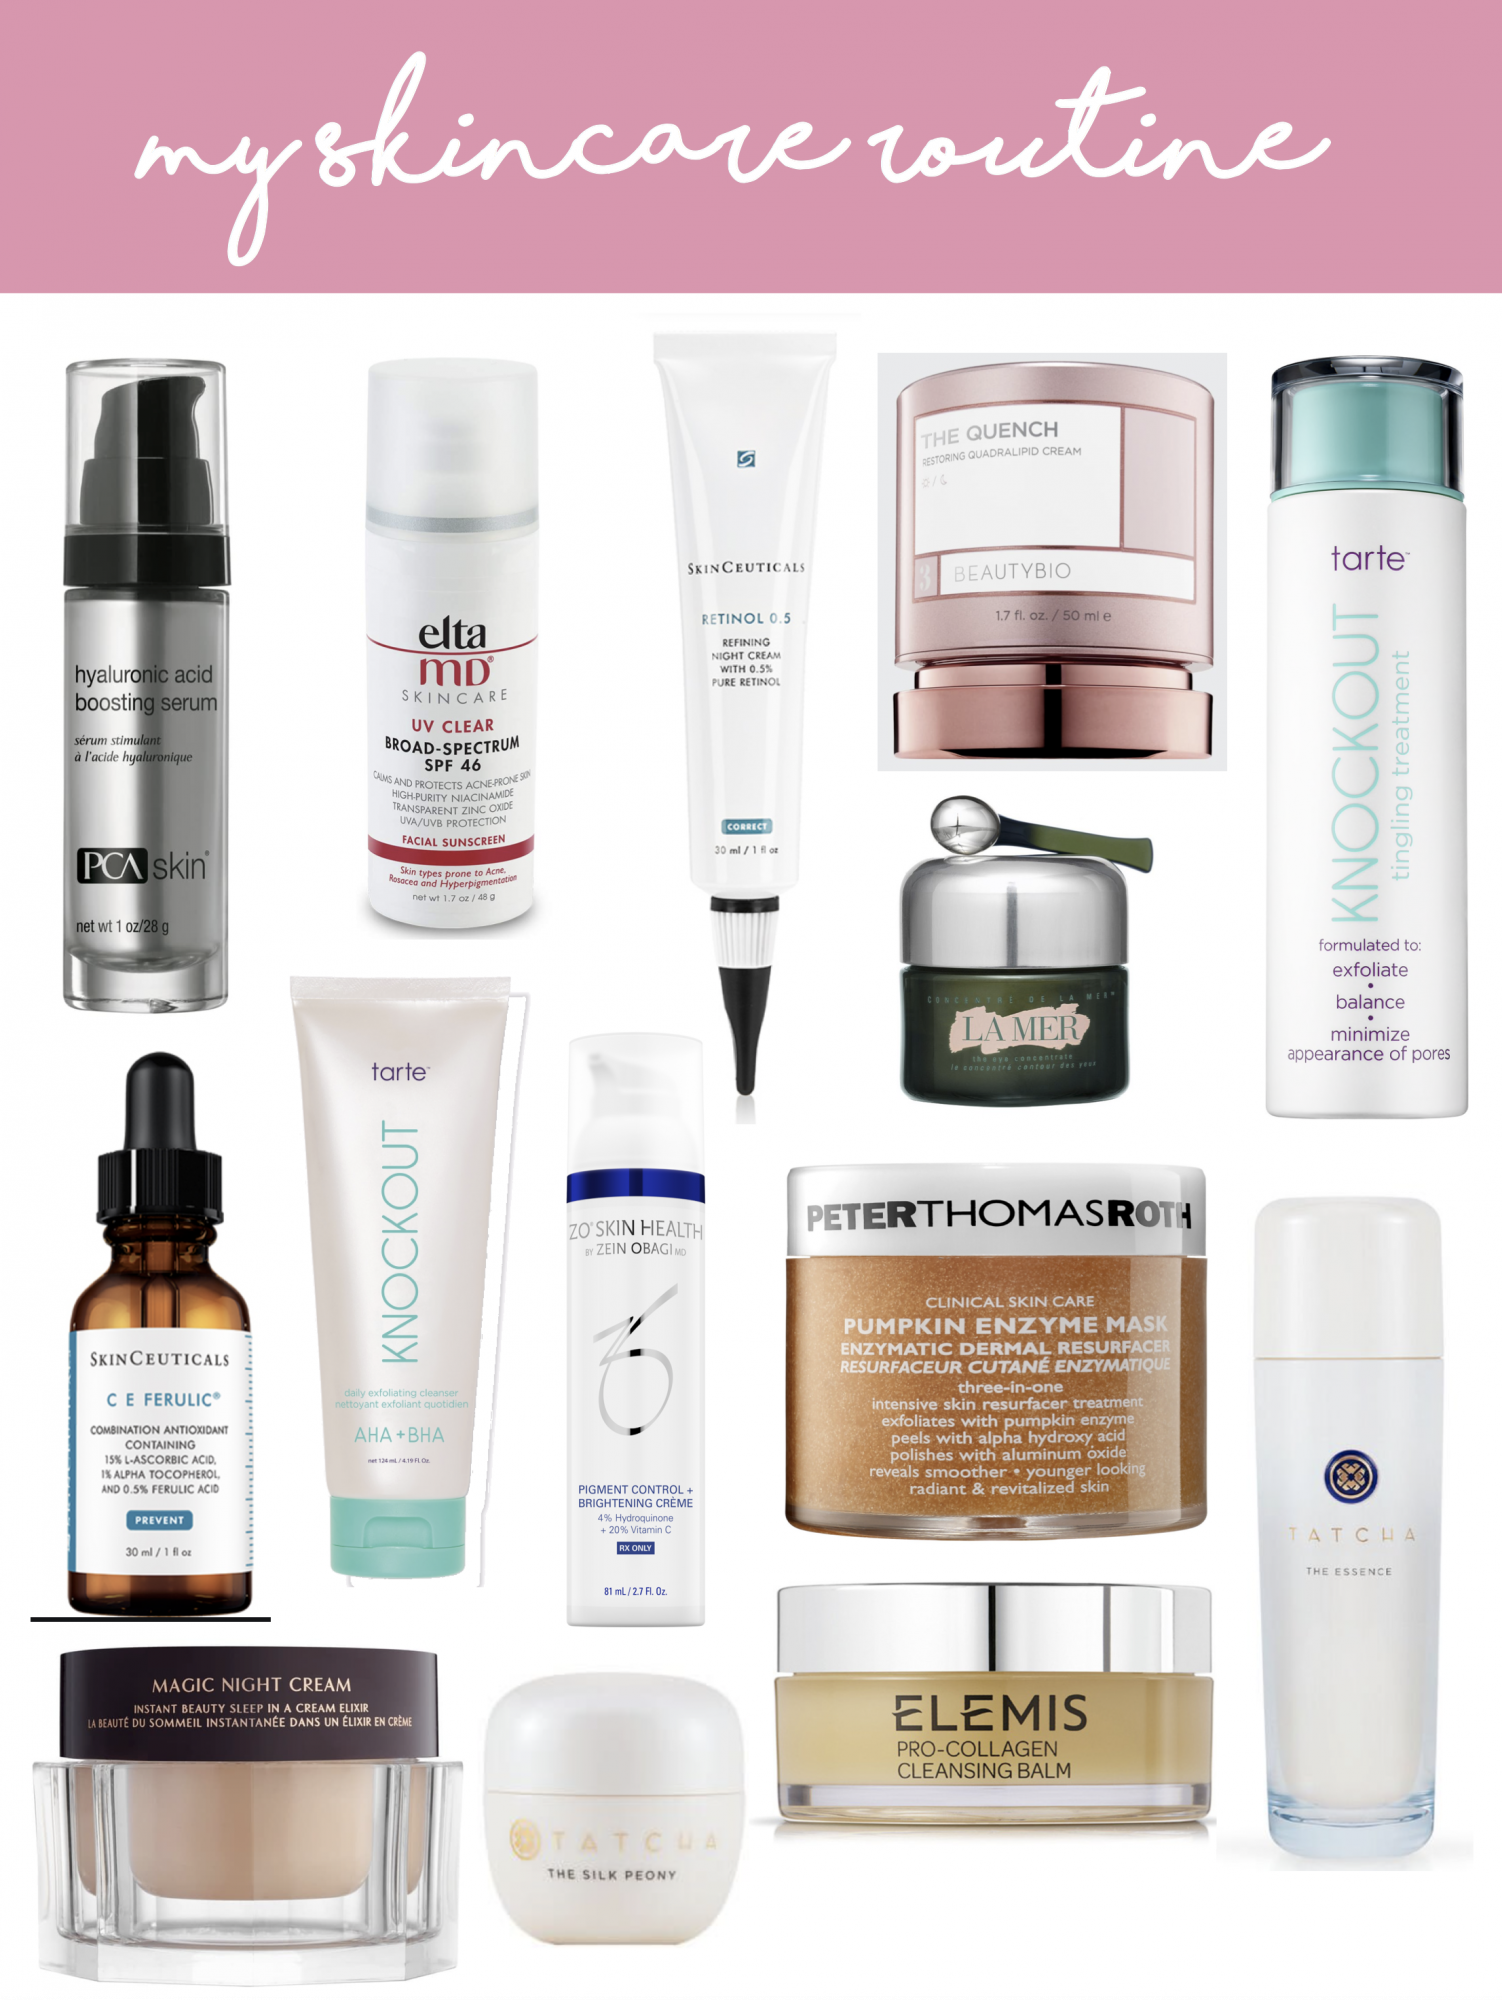 skincare routine, best skincare 2020, | How to Get Rid of Melasma by popular US beauty blog, The Sweetest Thing: collage image of Peter Thomas Roth pumpkin enzyme mask, Tarte knockout, Elemis Collagen cleansing balm, Hyaluronic acid boosting serum, Elta MD UV Clear, La Mer face scrub, and Beauty Bio The Quench.